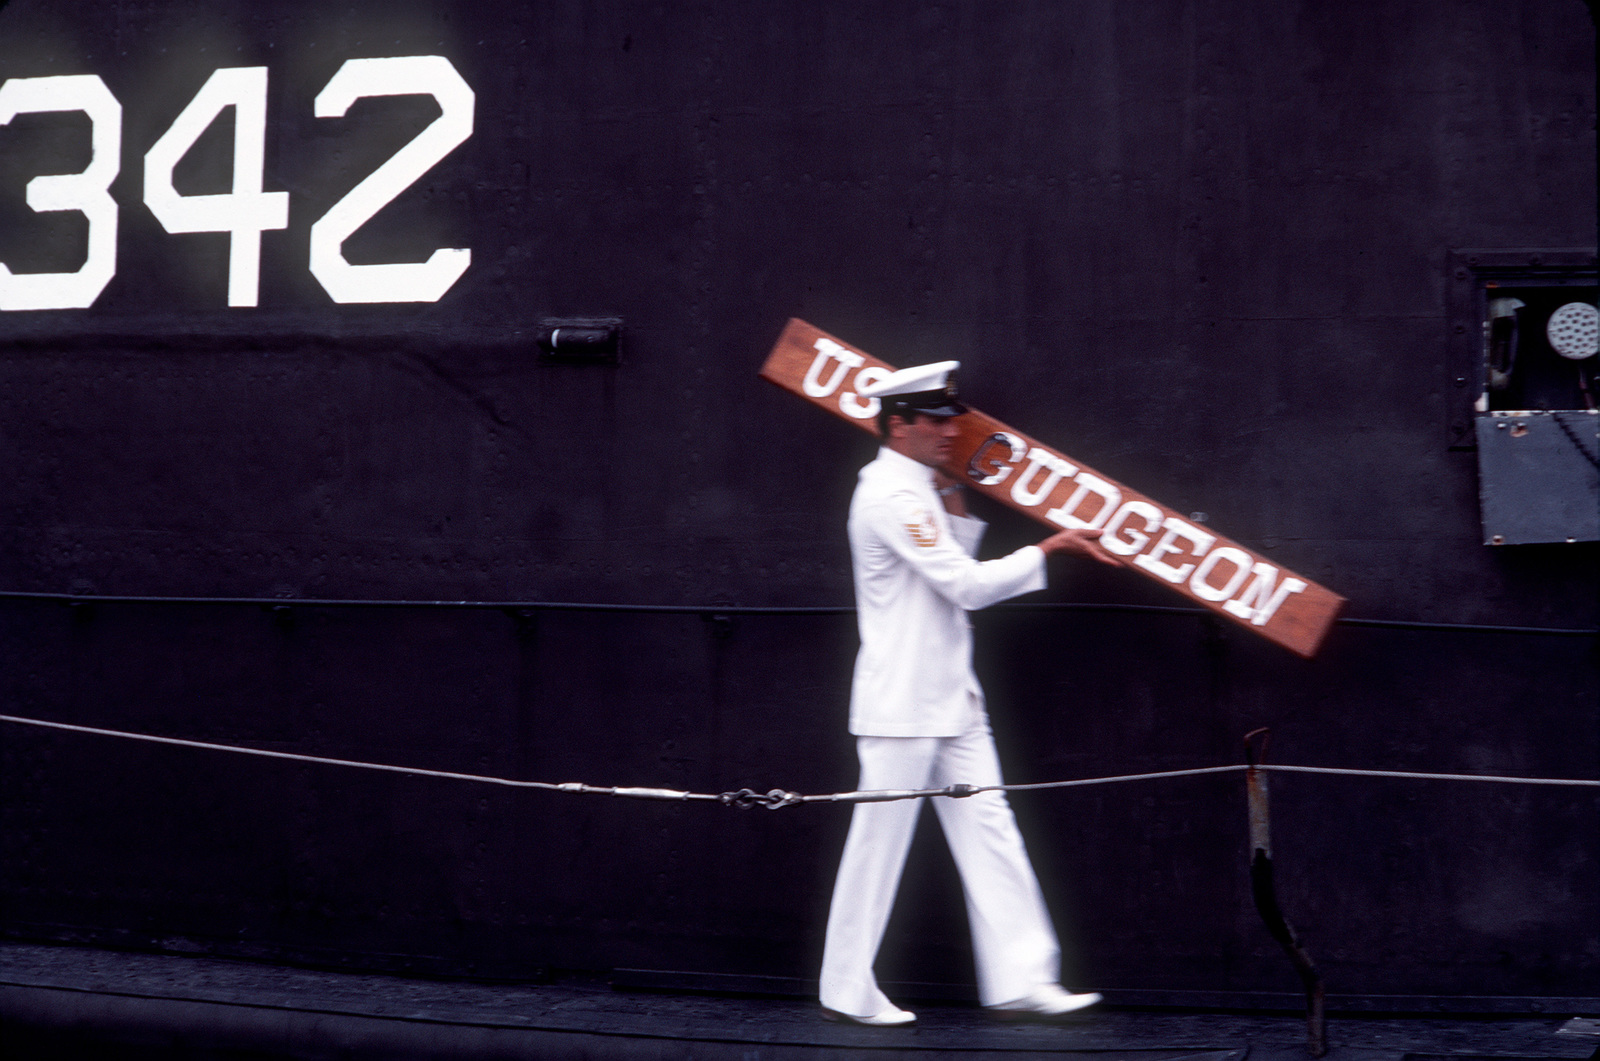 A Turkish sailor removes the name from the Tang class submarine ex-USS GUDGEON (SSAG 567) during the transfer ceremony. The GUDGEON was decommissioned and is being immediately transferred to the Turkish Navy on a five-year lease. The submarine is being renamed to TCG HIZIR REIS (S 342)